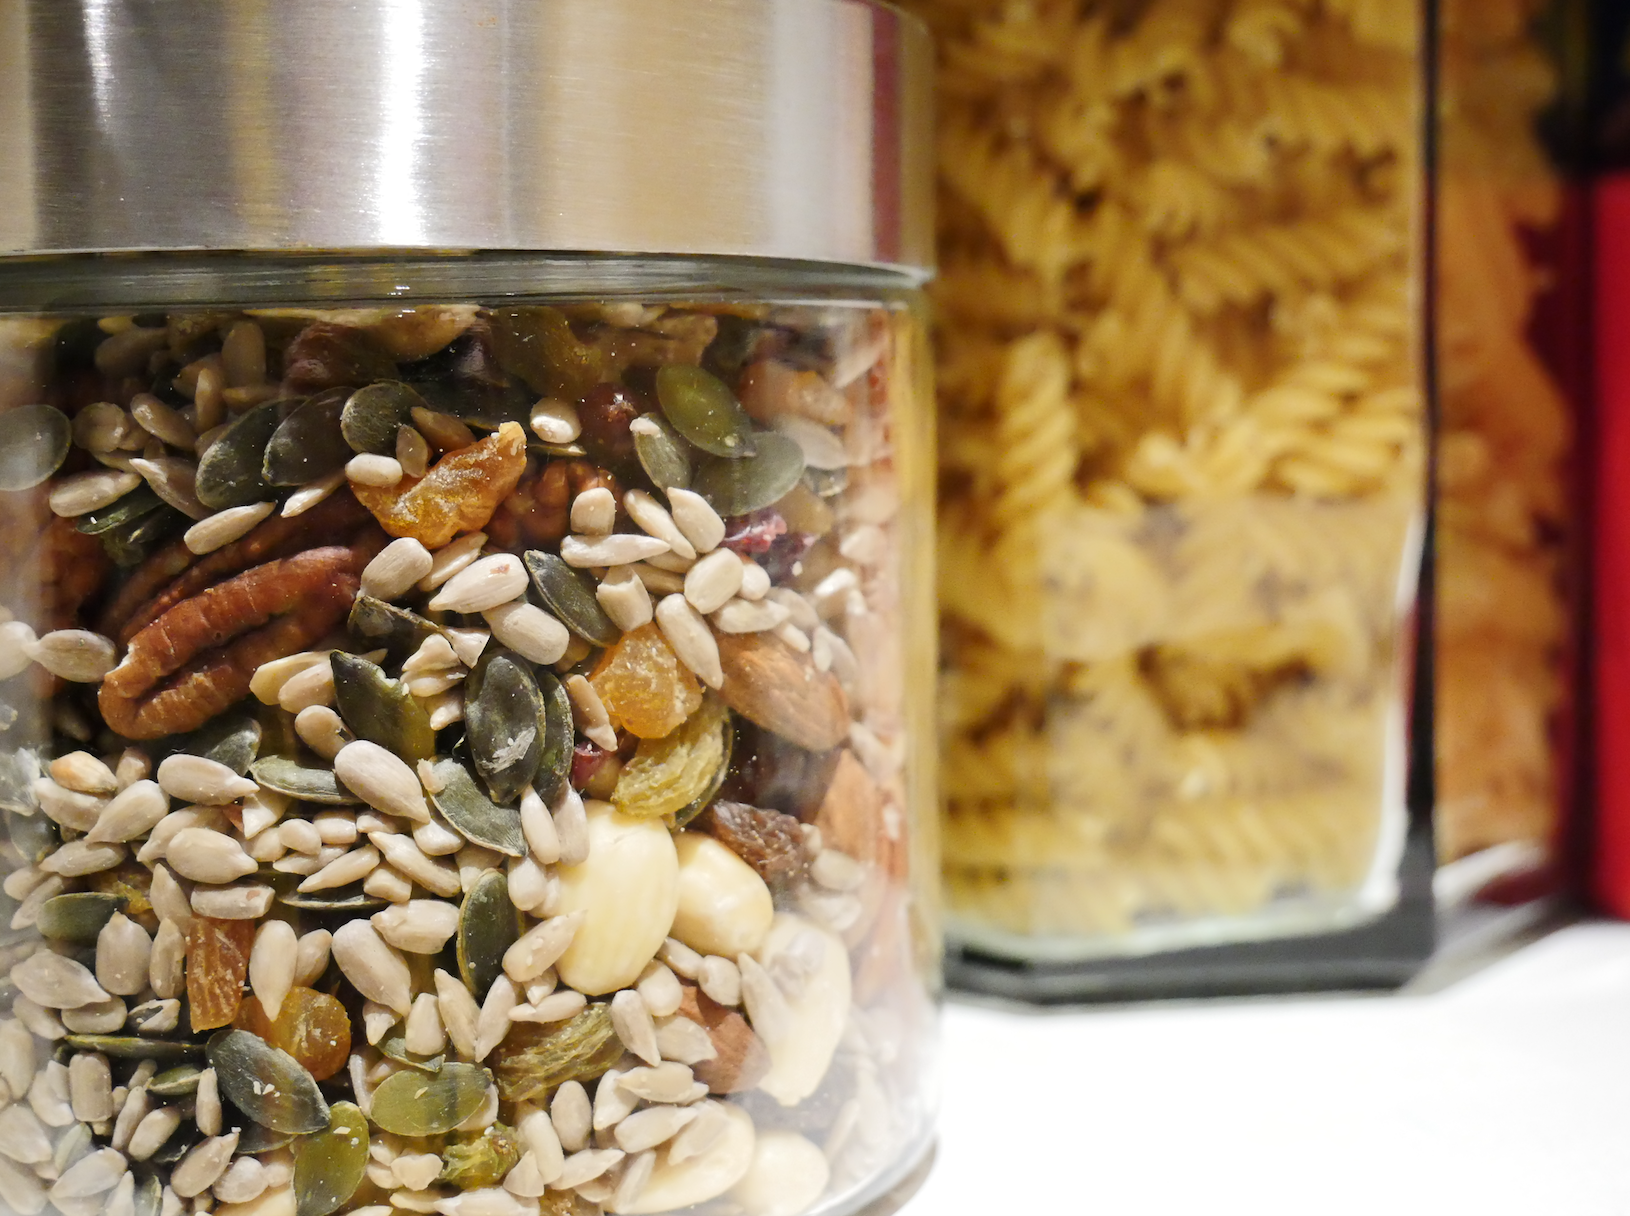 Nuts and pasta now in glass jars